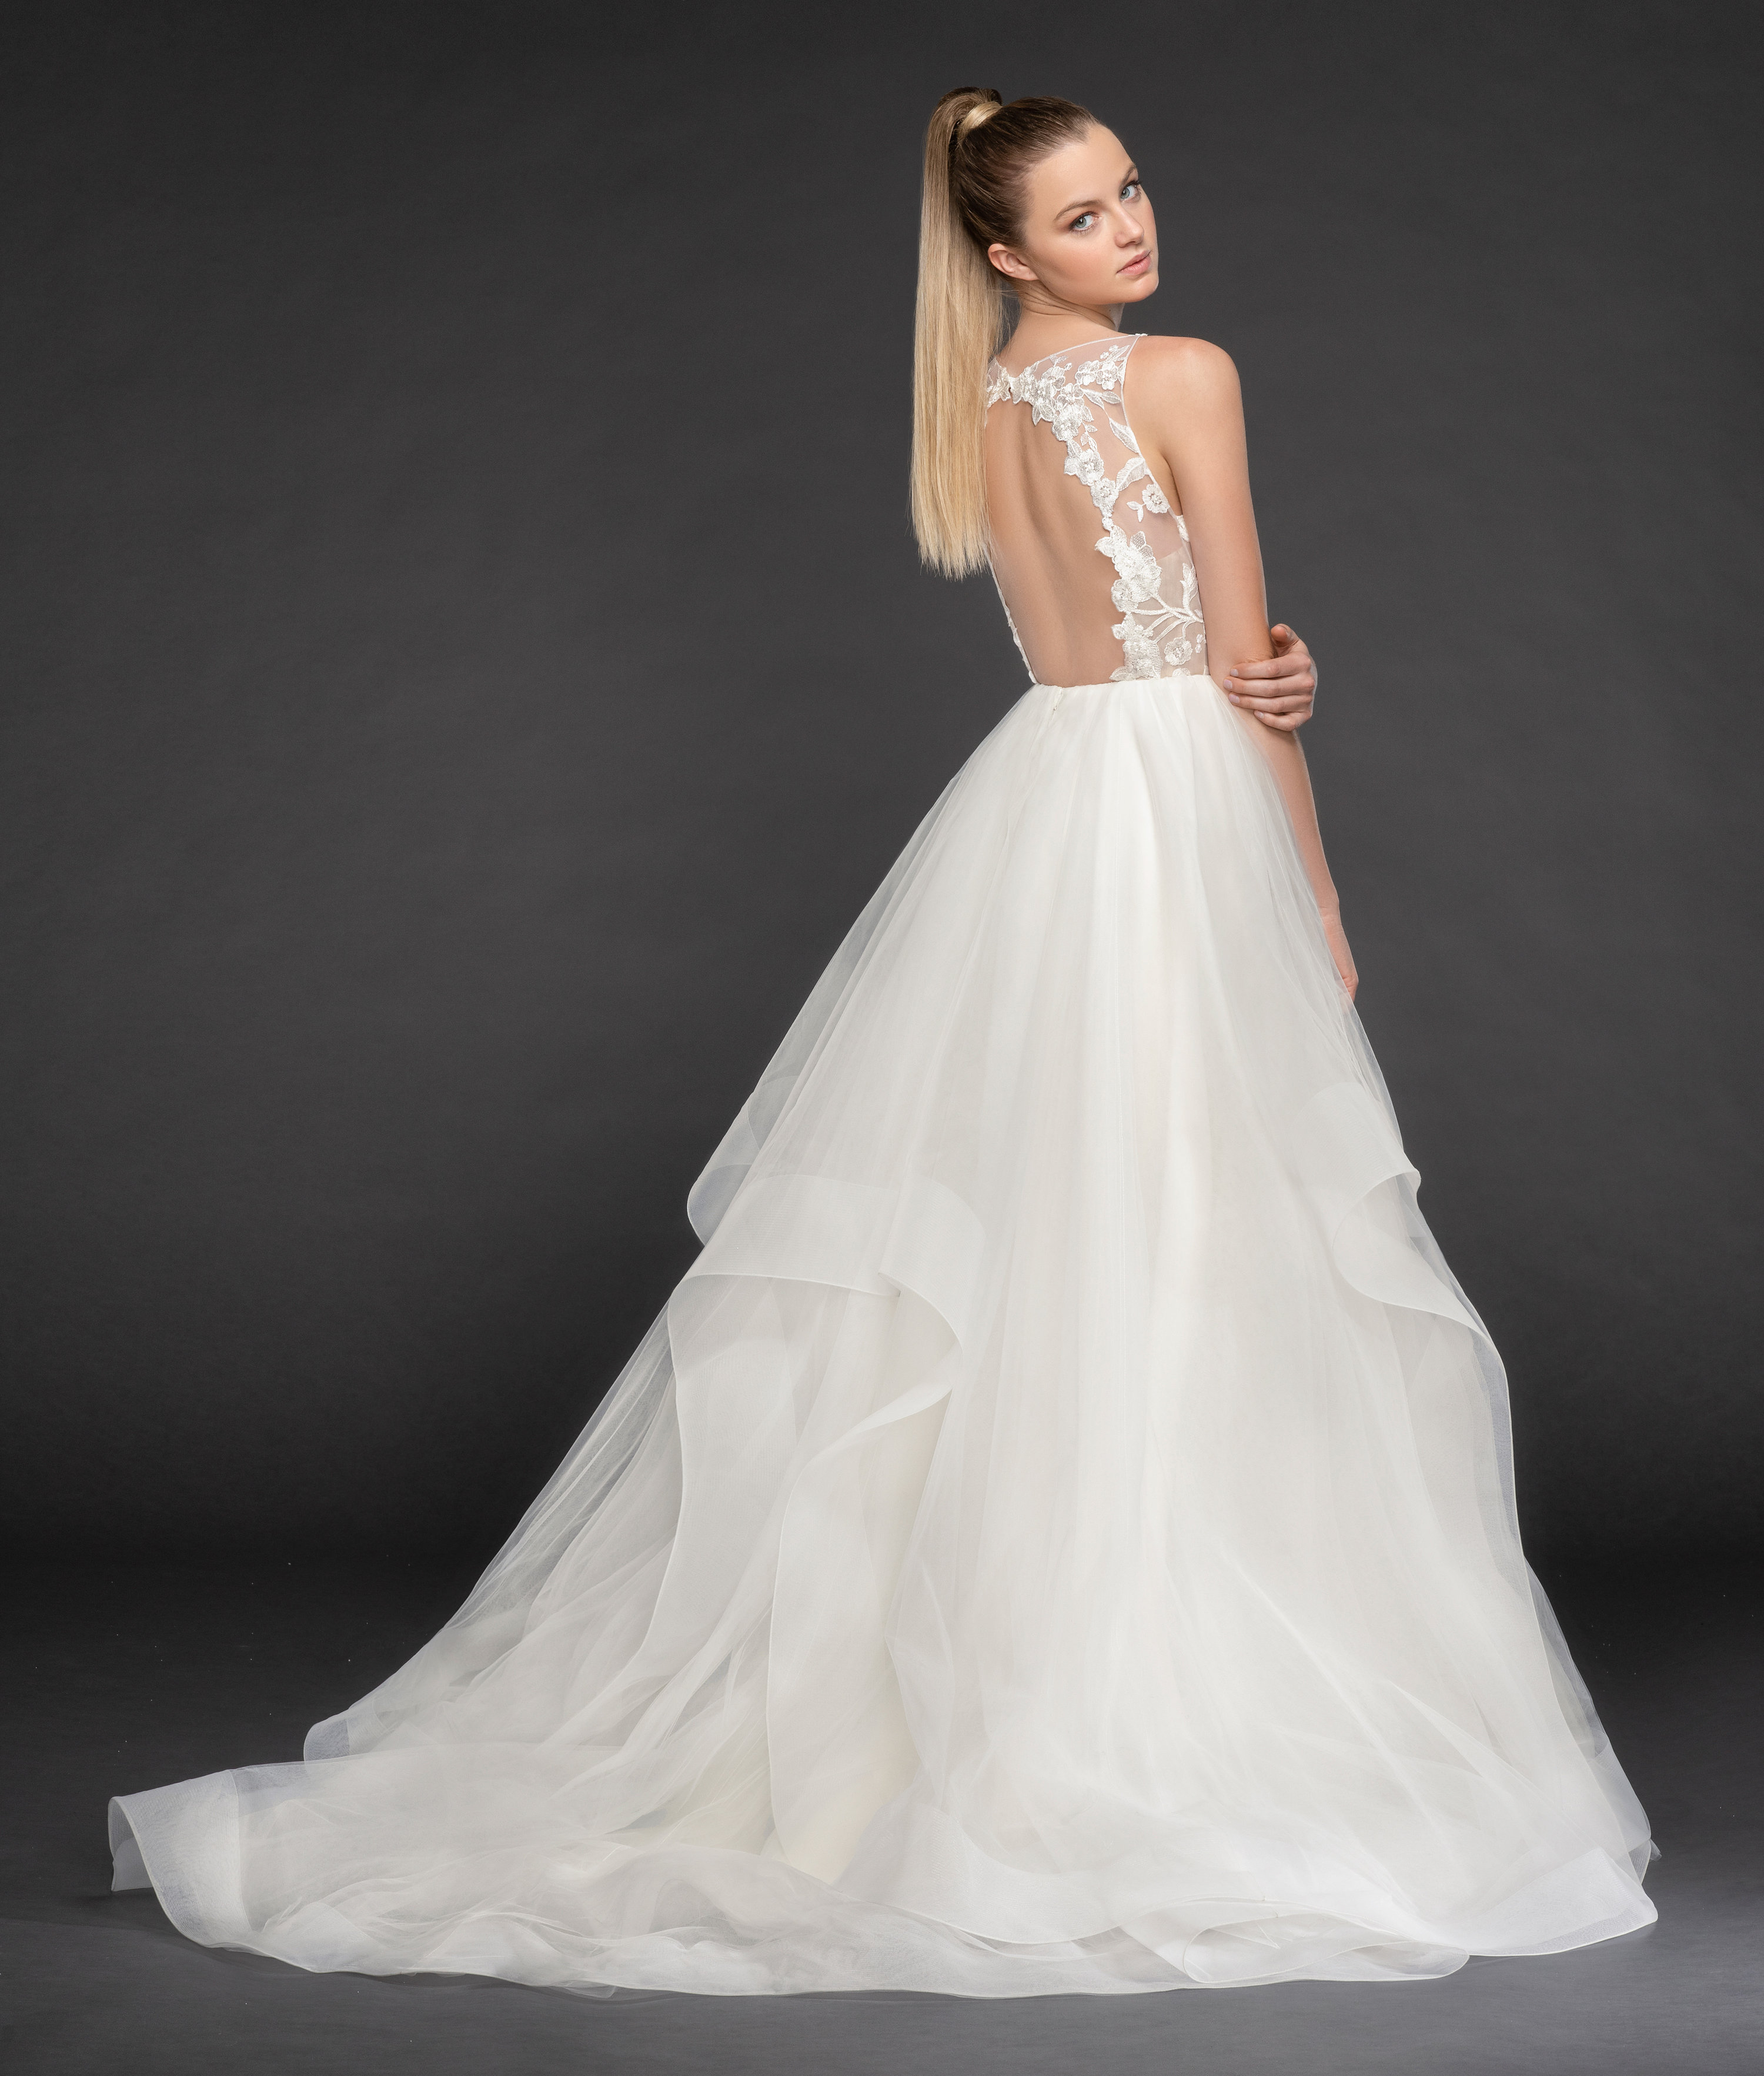 Bridal Gowns and Wedding Dresses by JLM Couture - Style 1855 Iris